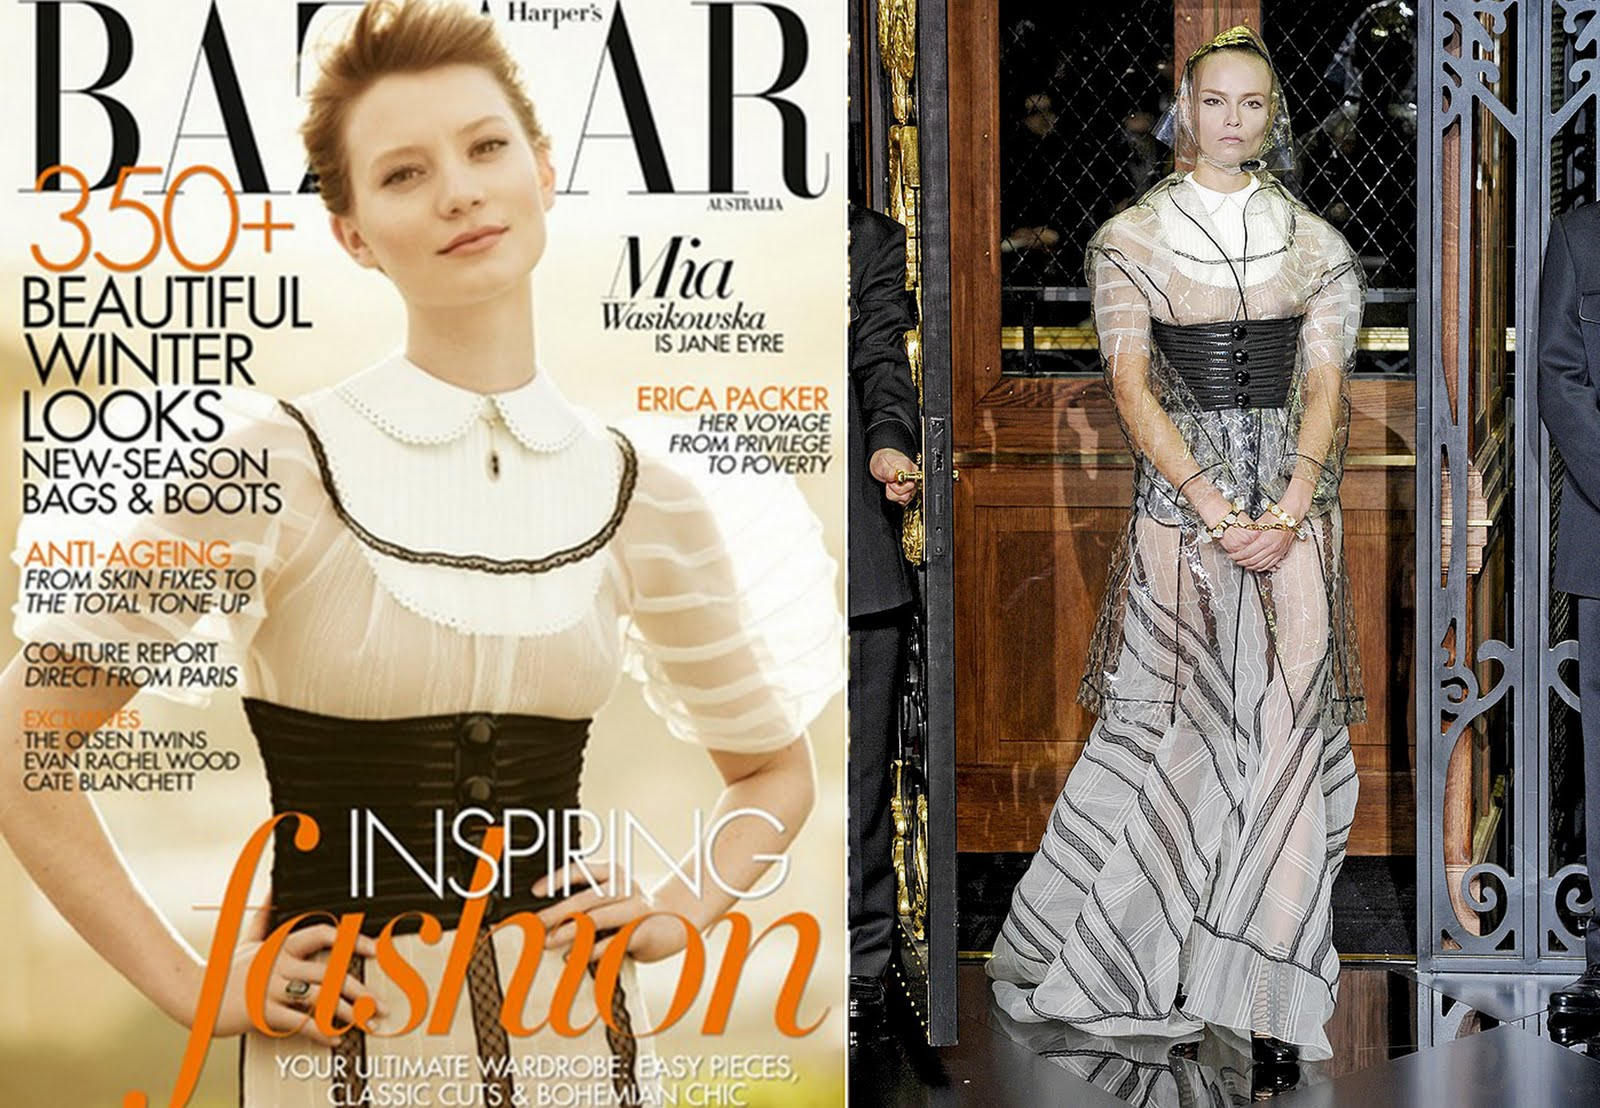 8c941e14d56f The actress wears Louis Vuitton for the vintage-styled cover. She poses in a  sheer black and white dress with high collar